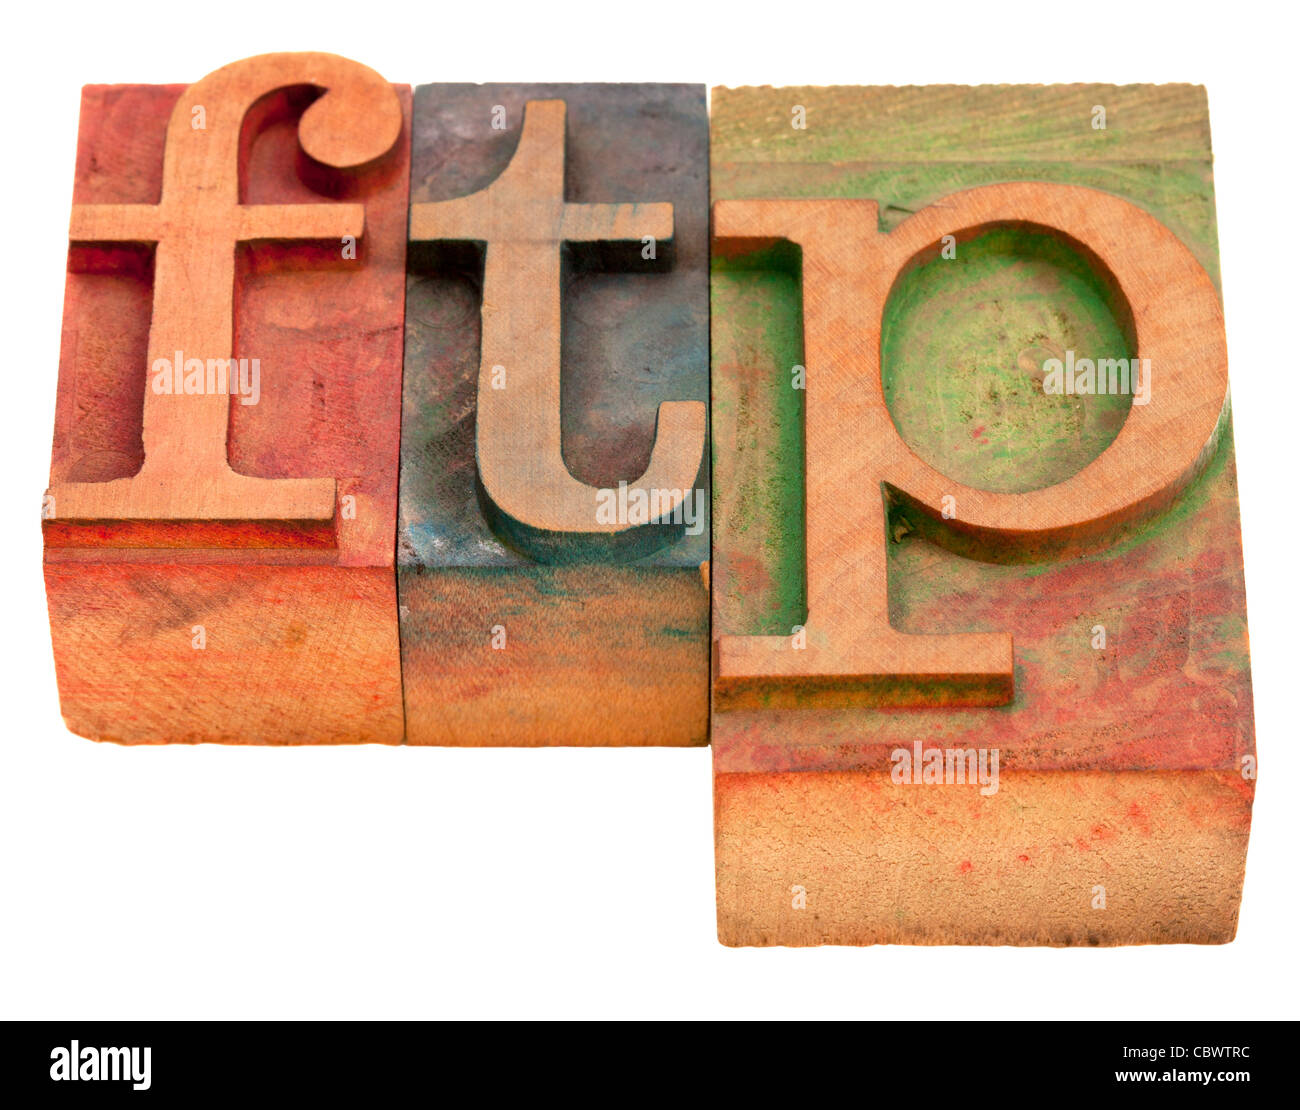 ftp (file transfer protocol) - word in vintage wooden letterpress printing blocks isolated on white - Stock Image